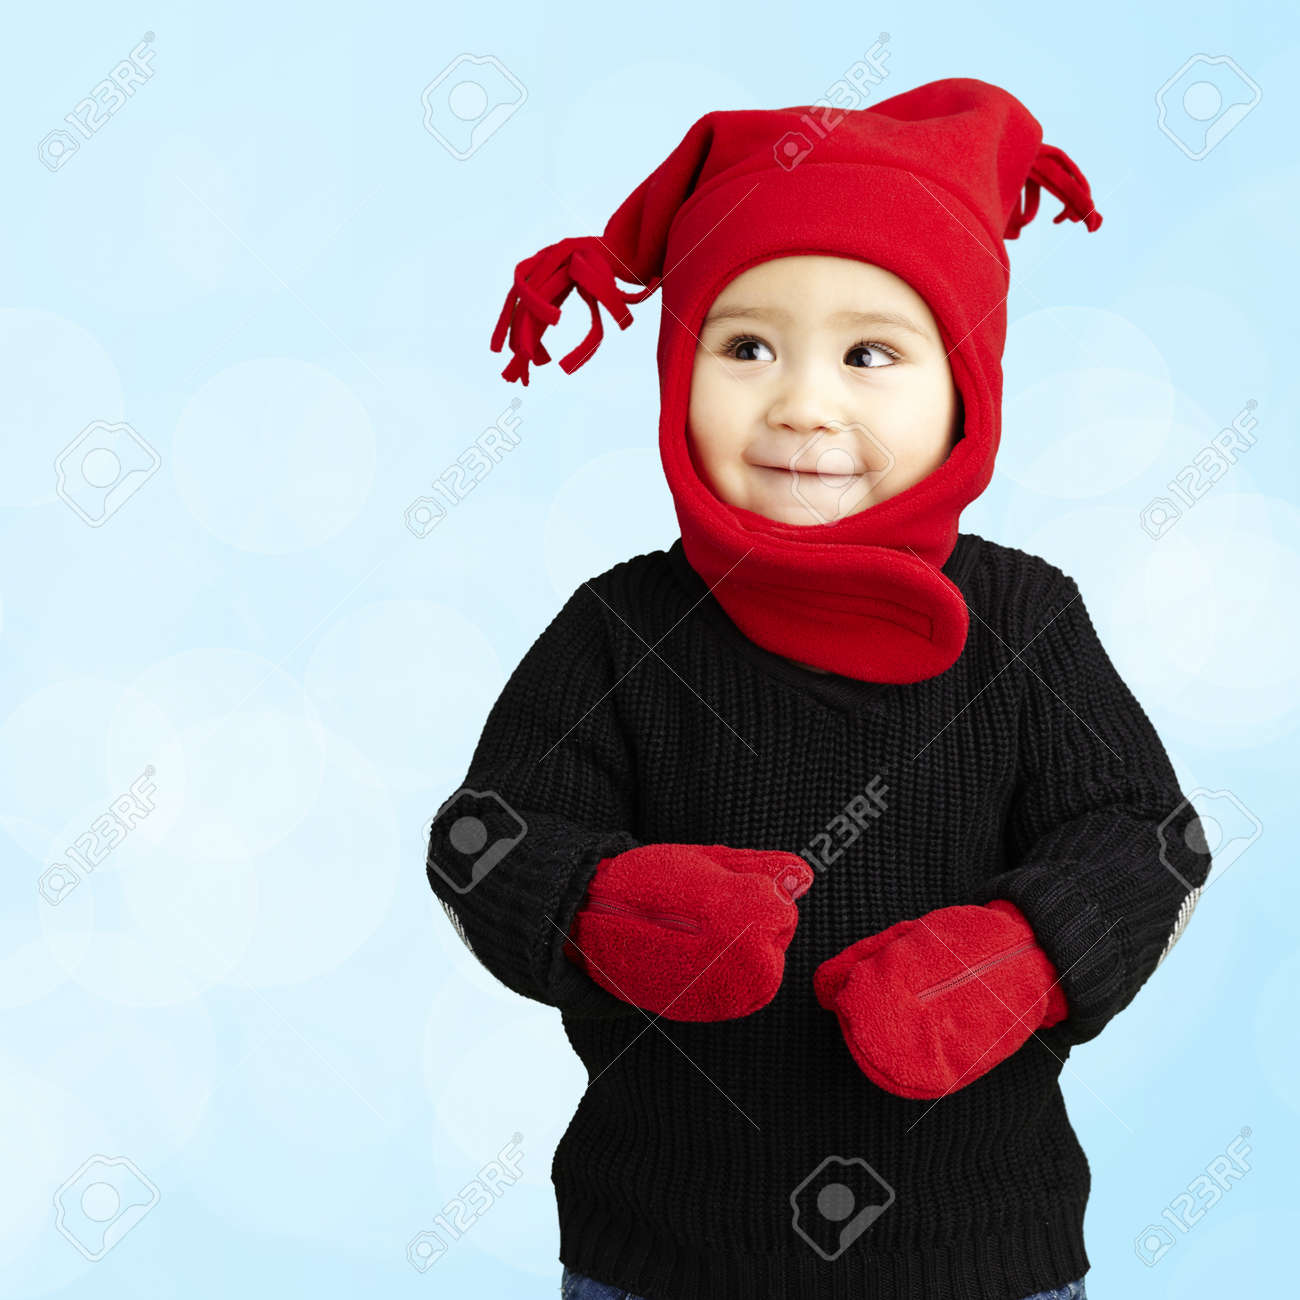 happy boy wearing winter clothes against a blue background Stock Photo - 14438793